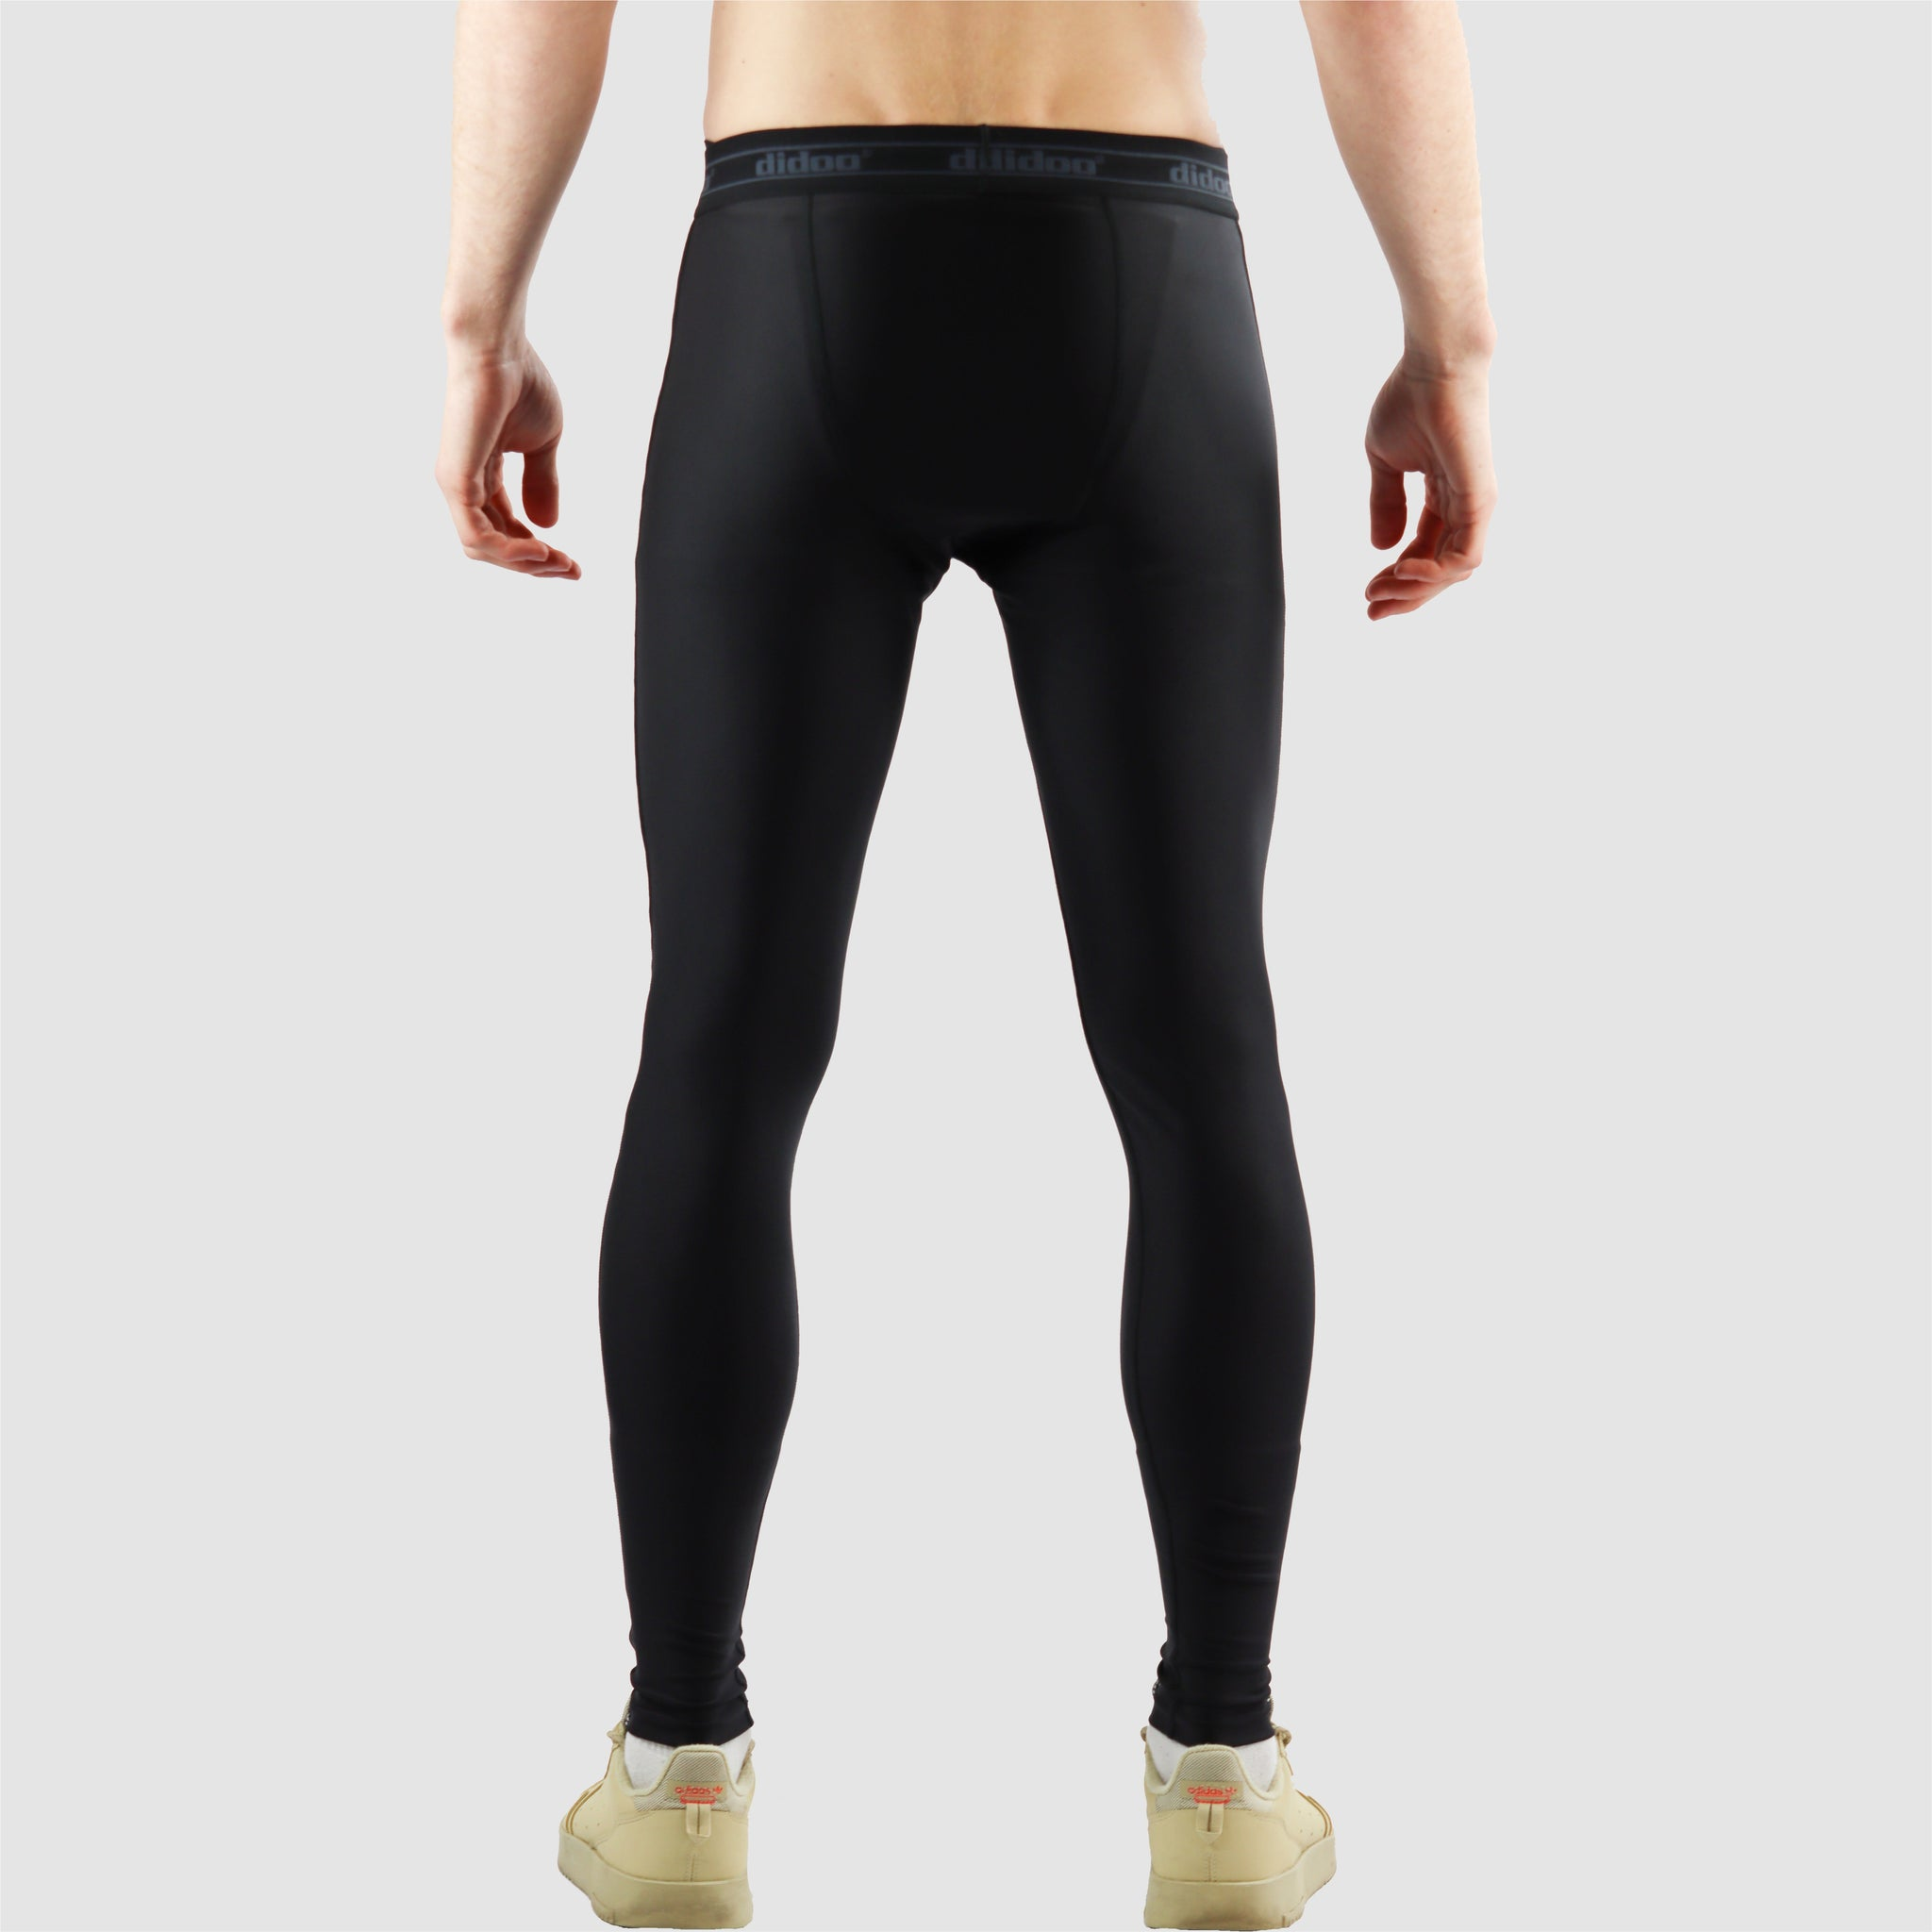 DiDOO Men's Compression Base Layer Leggings